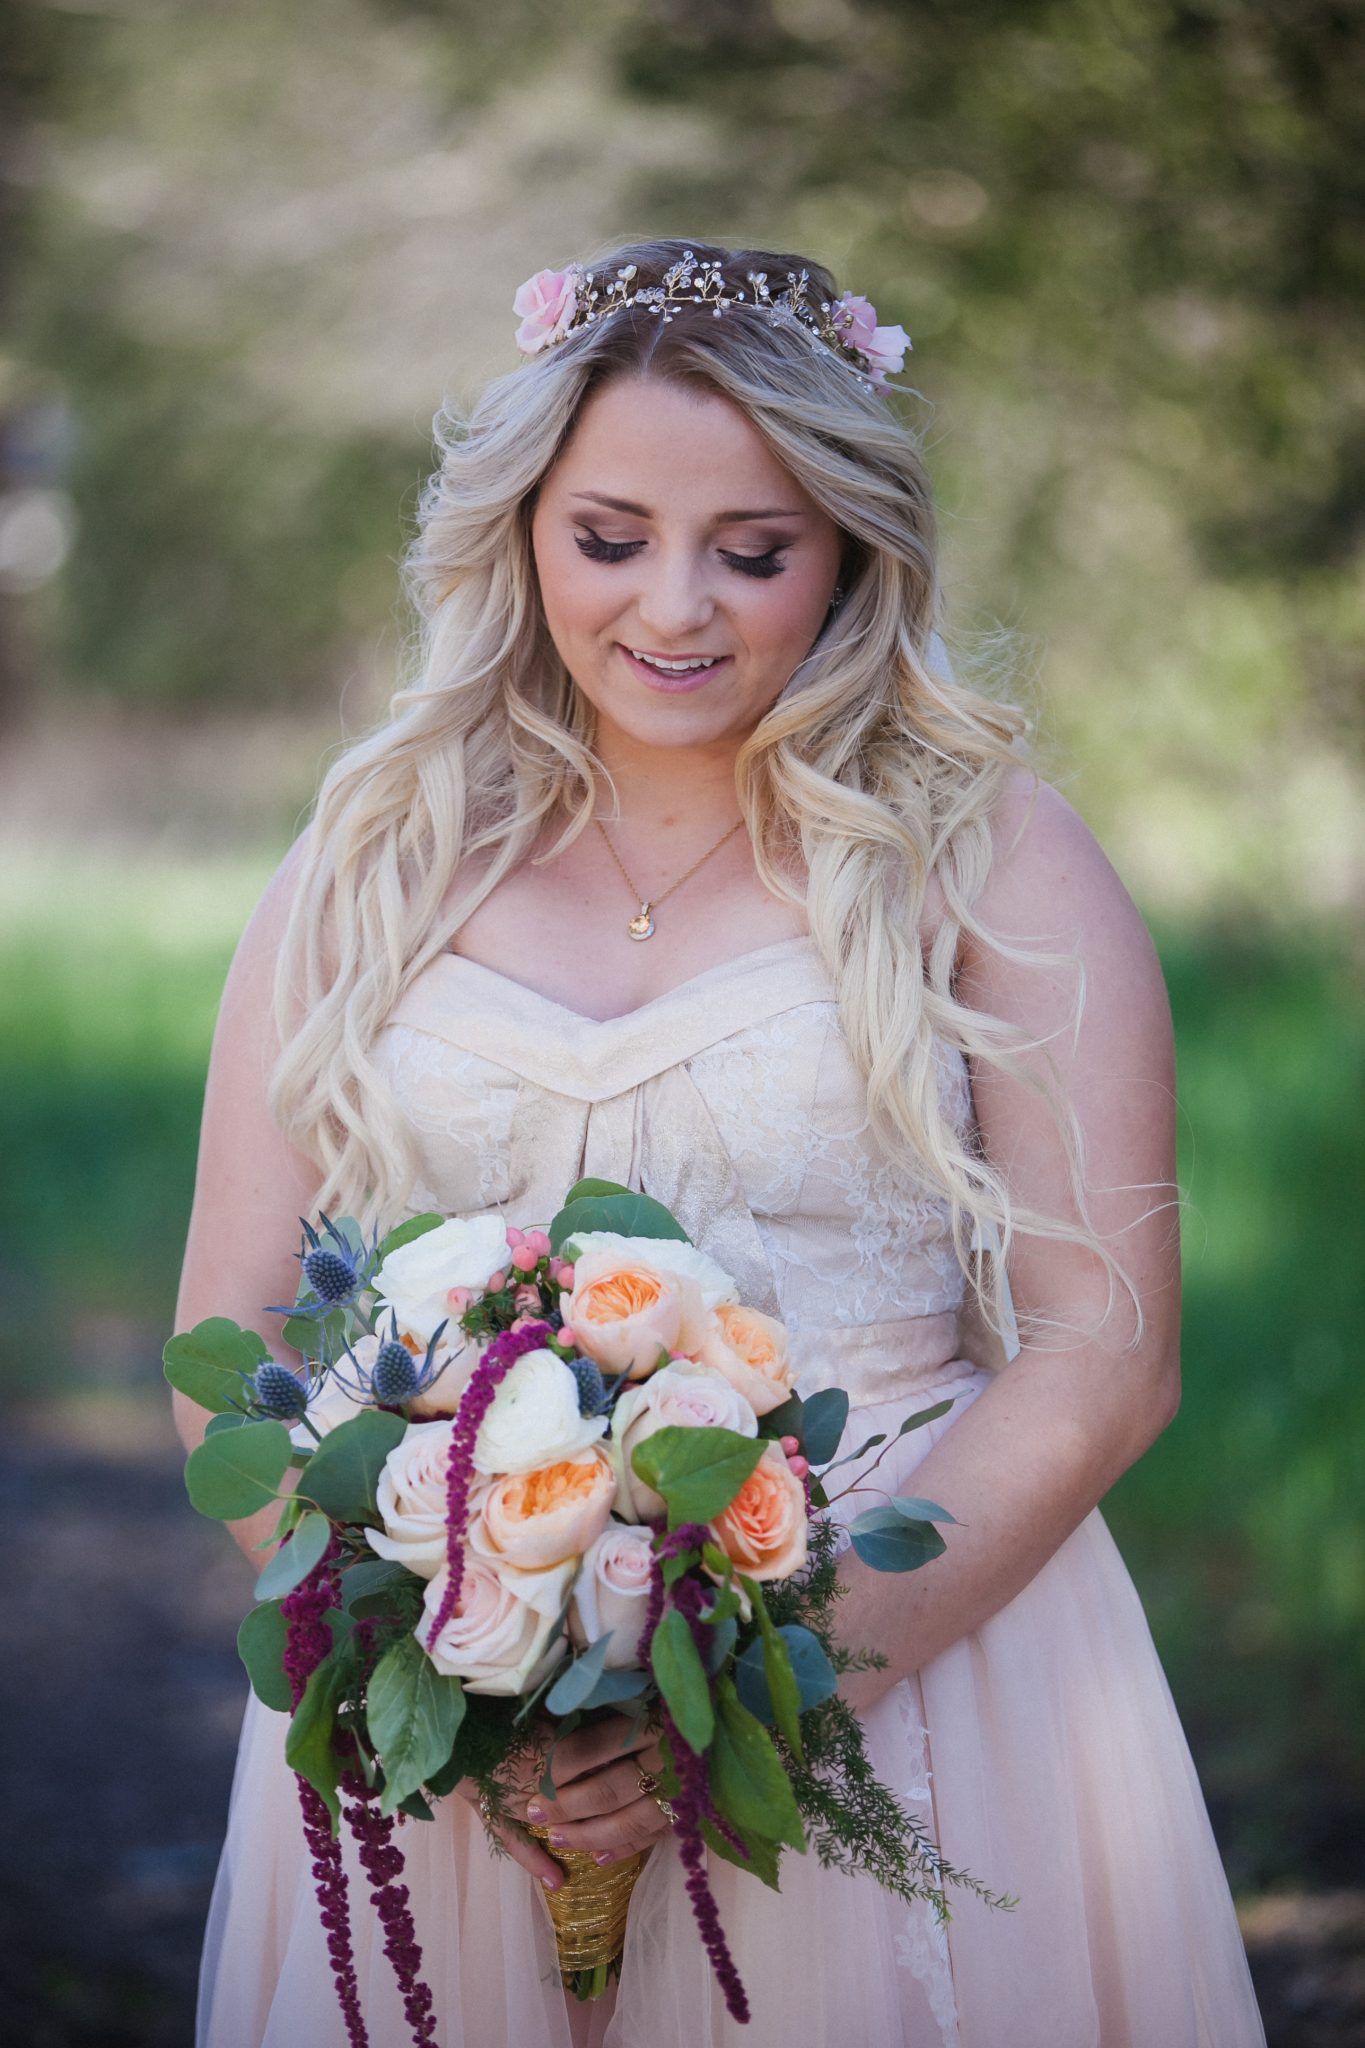 Portrait of the bride wearing a flower crown